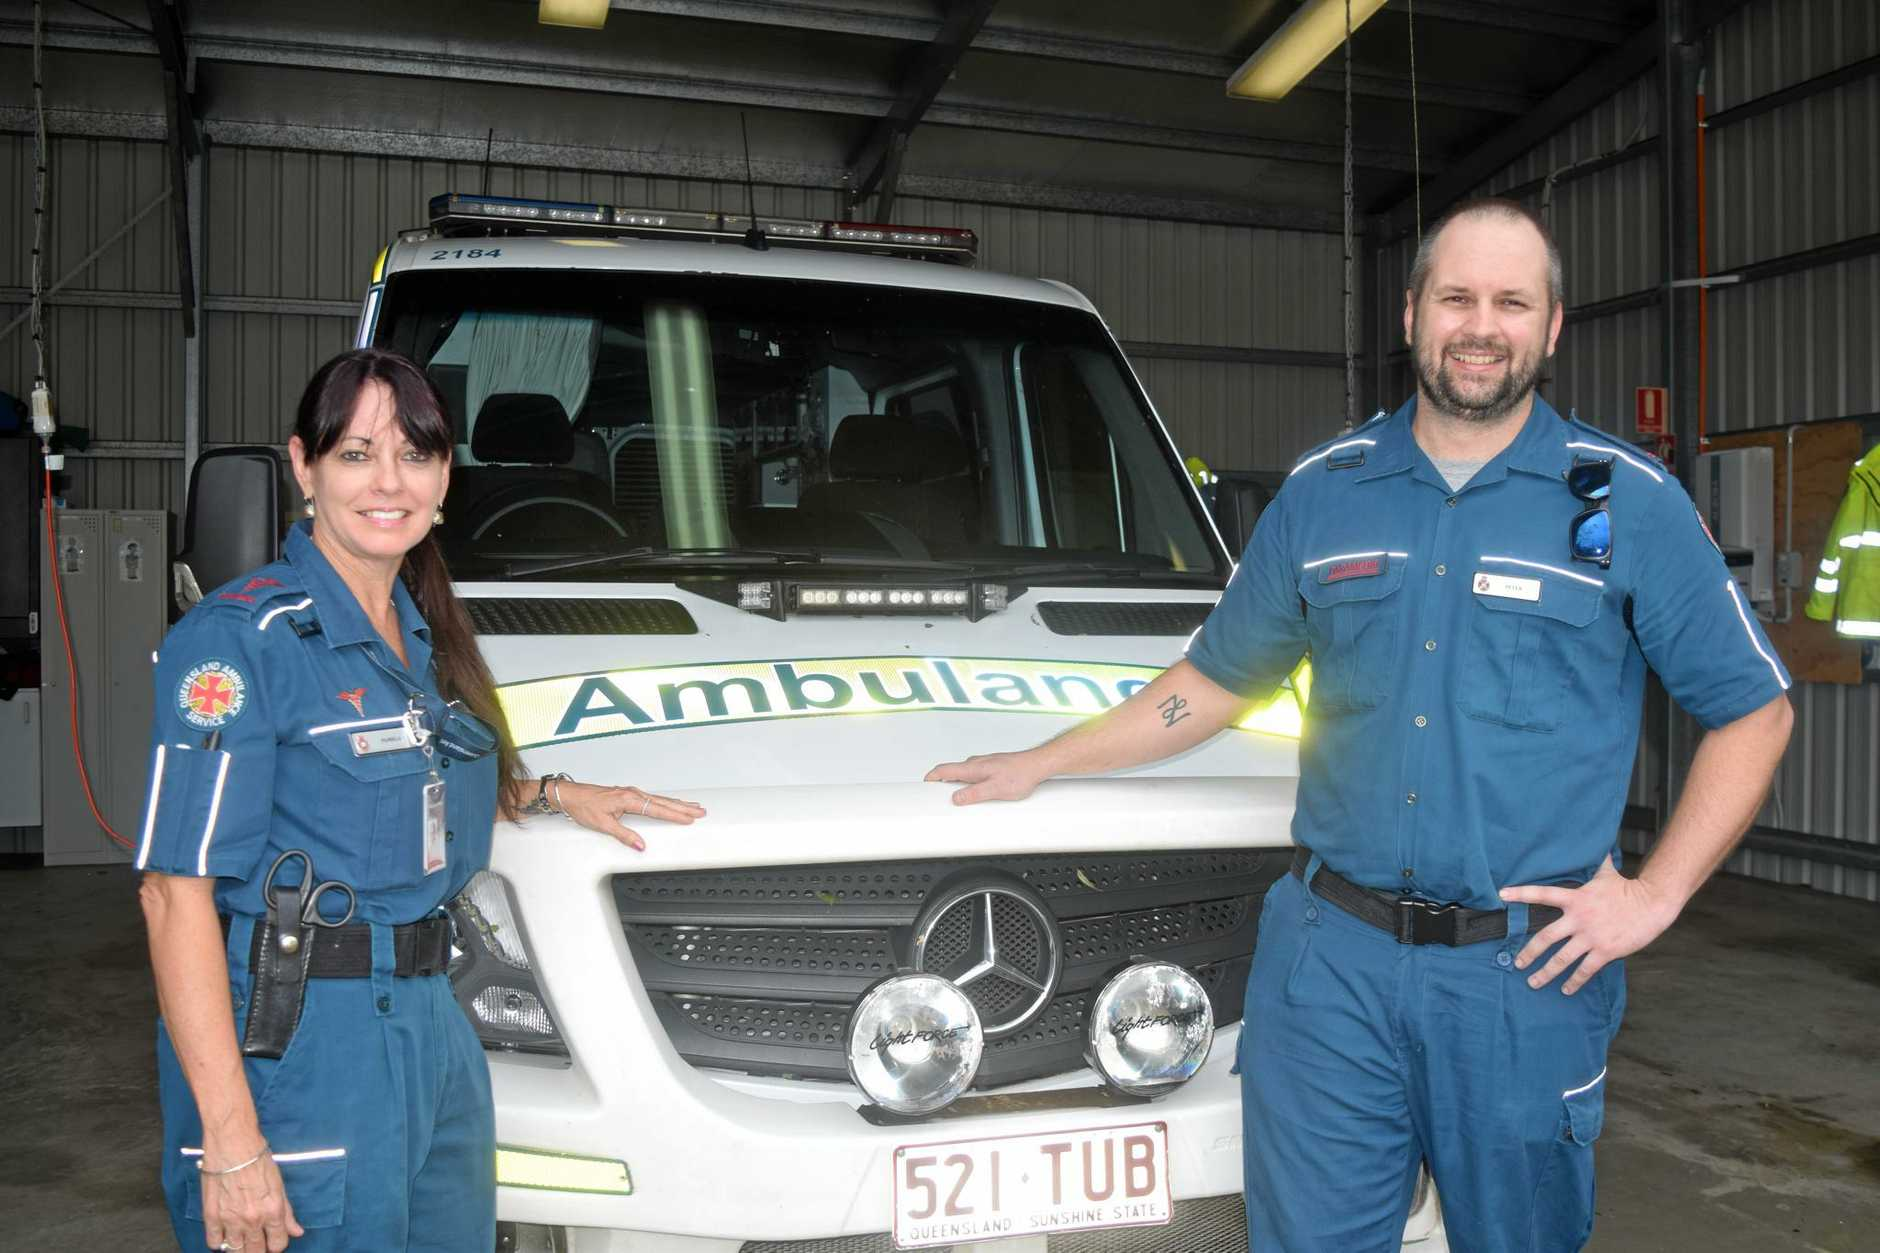 Graduate Paramedic Pamela Price and Advanced Care Paramedic Peter Gleeson have got the story of a lifetime.